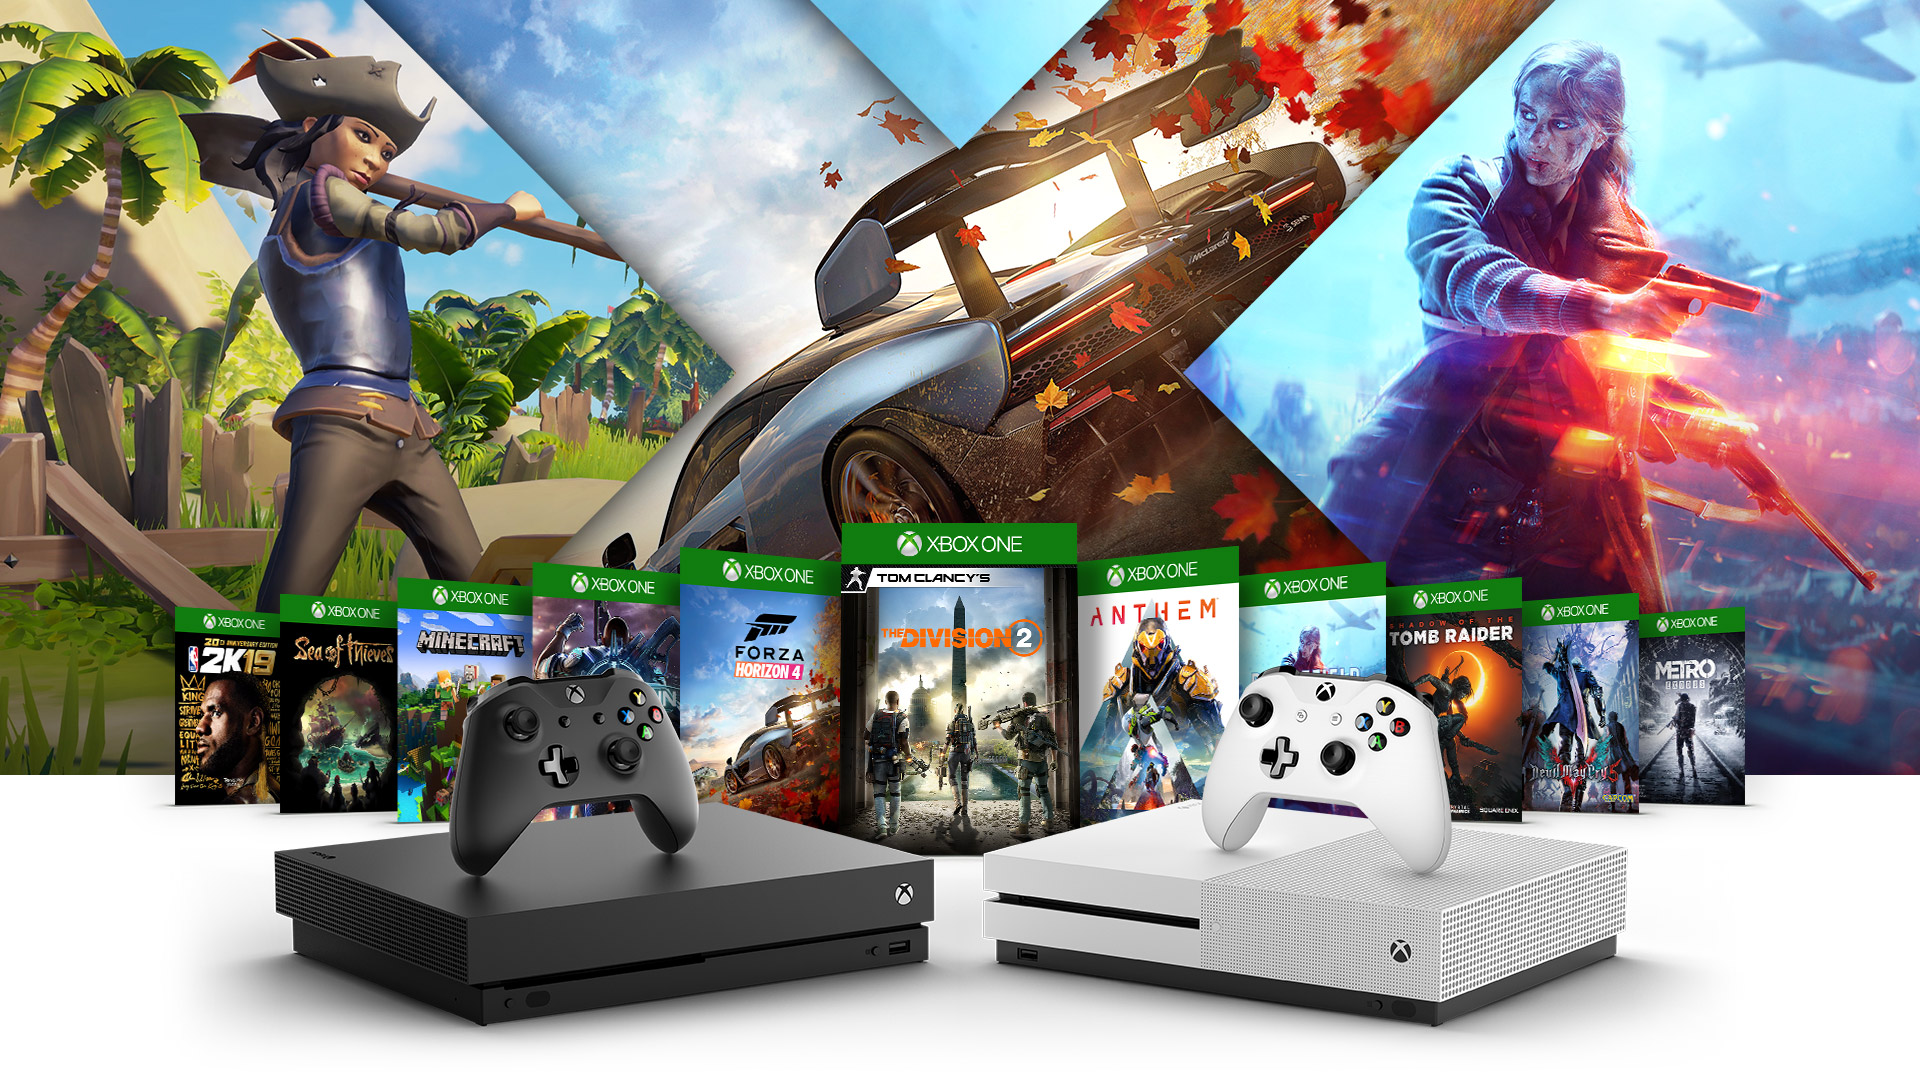 Zijaanzicht van de Xbox One X en Xbox One S en Xbox One S All-Digital Edition met daaromheen foto's van de verpakkingen van Crackdown 3, Sea of Thieves, Minecraft, Madden 19, 2K19, Forza Horizon 4, Fallout 76, Battlefield Five, Shadow of the Tomb Raider, PlayUnknown Battlegrounds en State of Decay 2